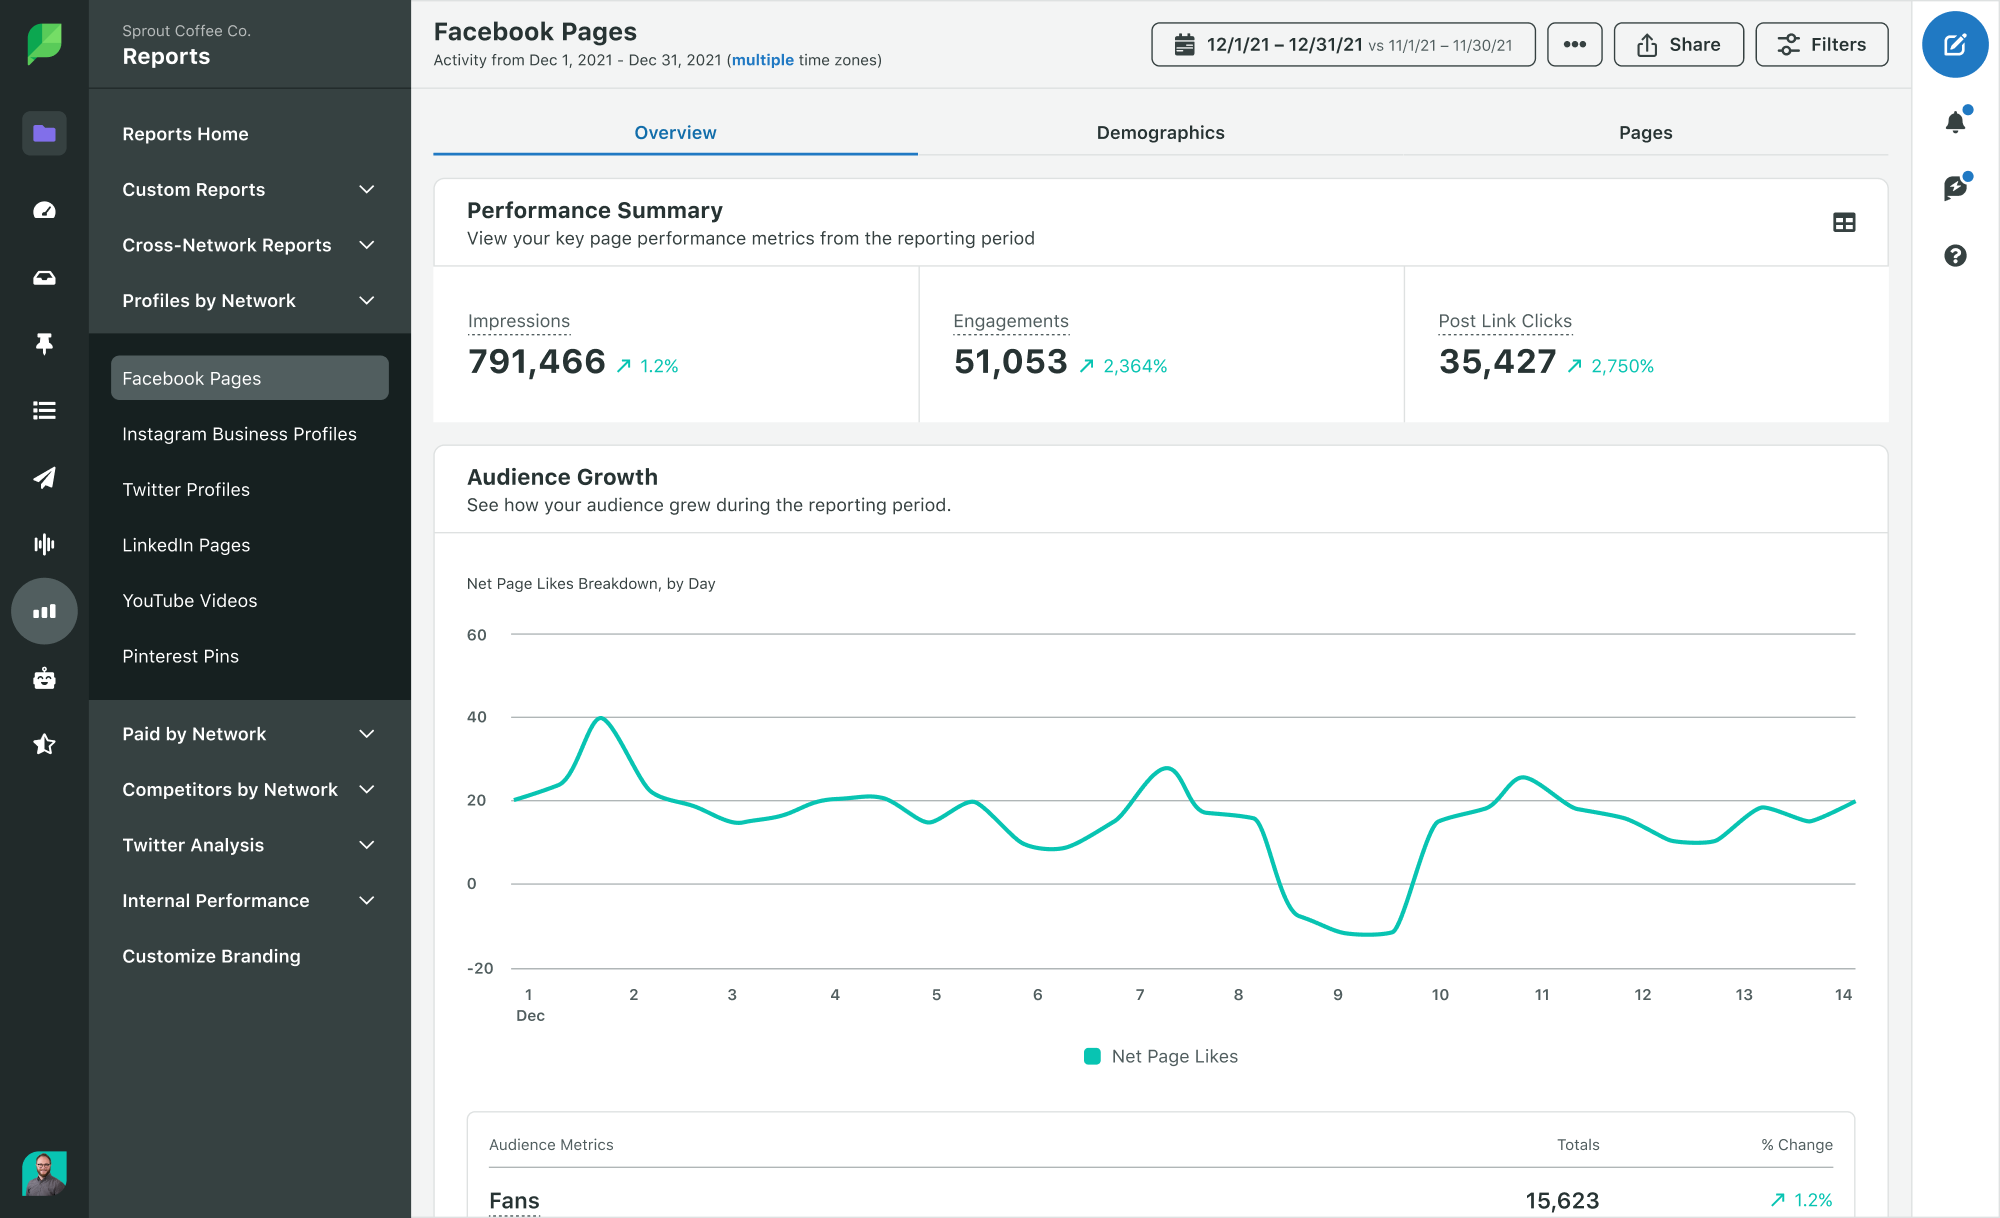 Sprout Social Product Image of Analytics Facebook Pages Report